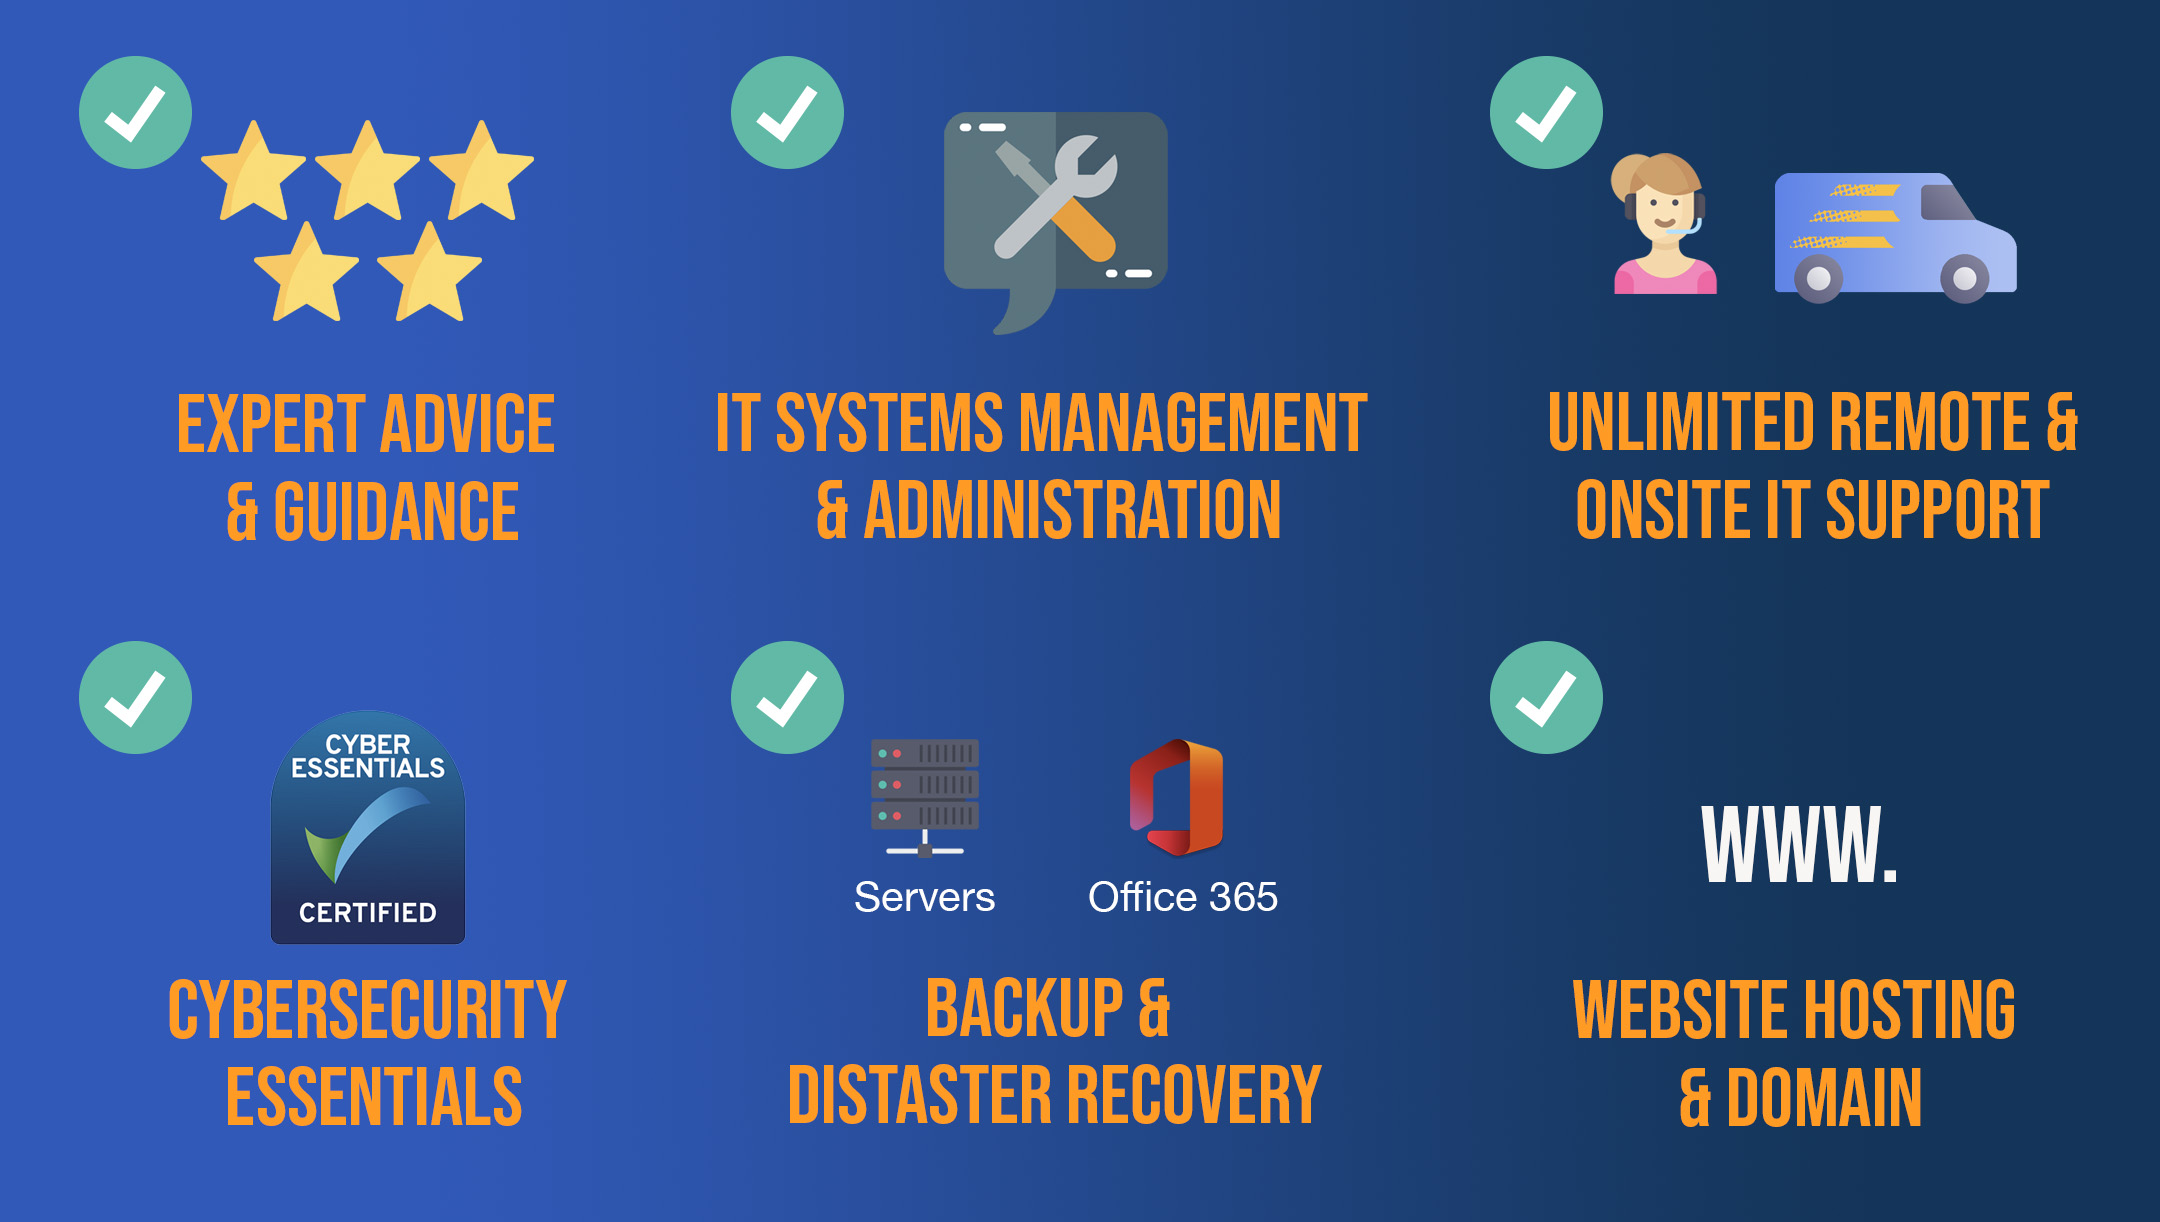 What's included in our IT support service